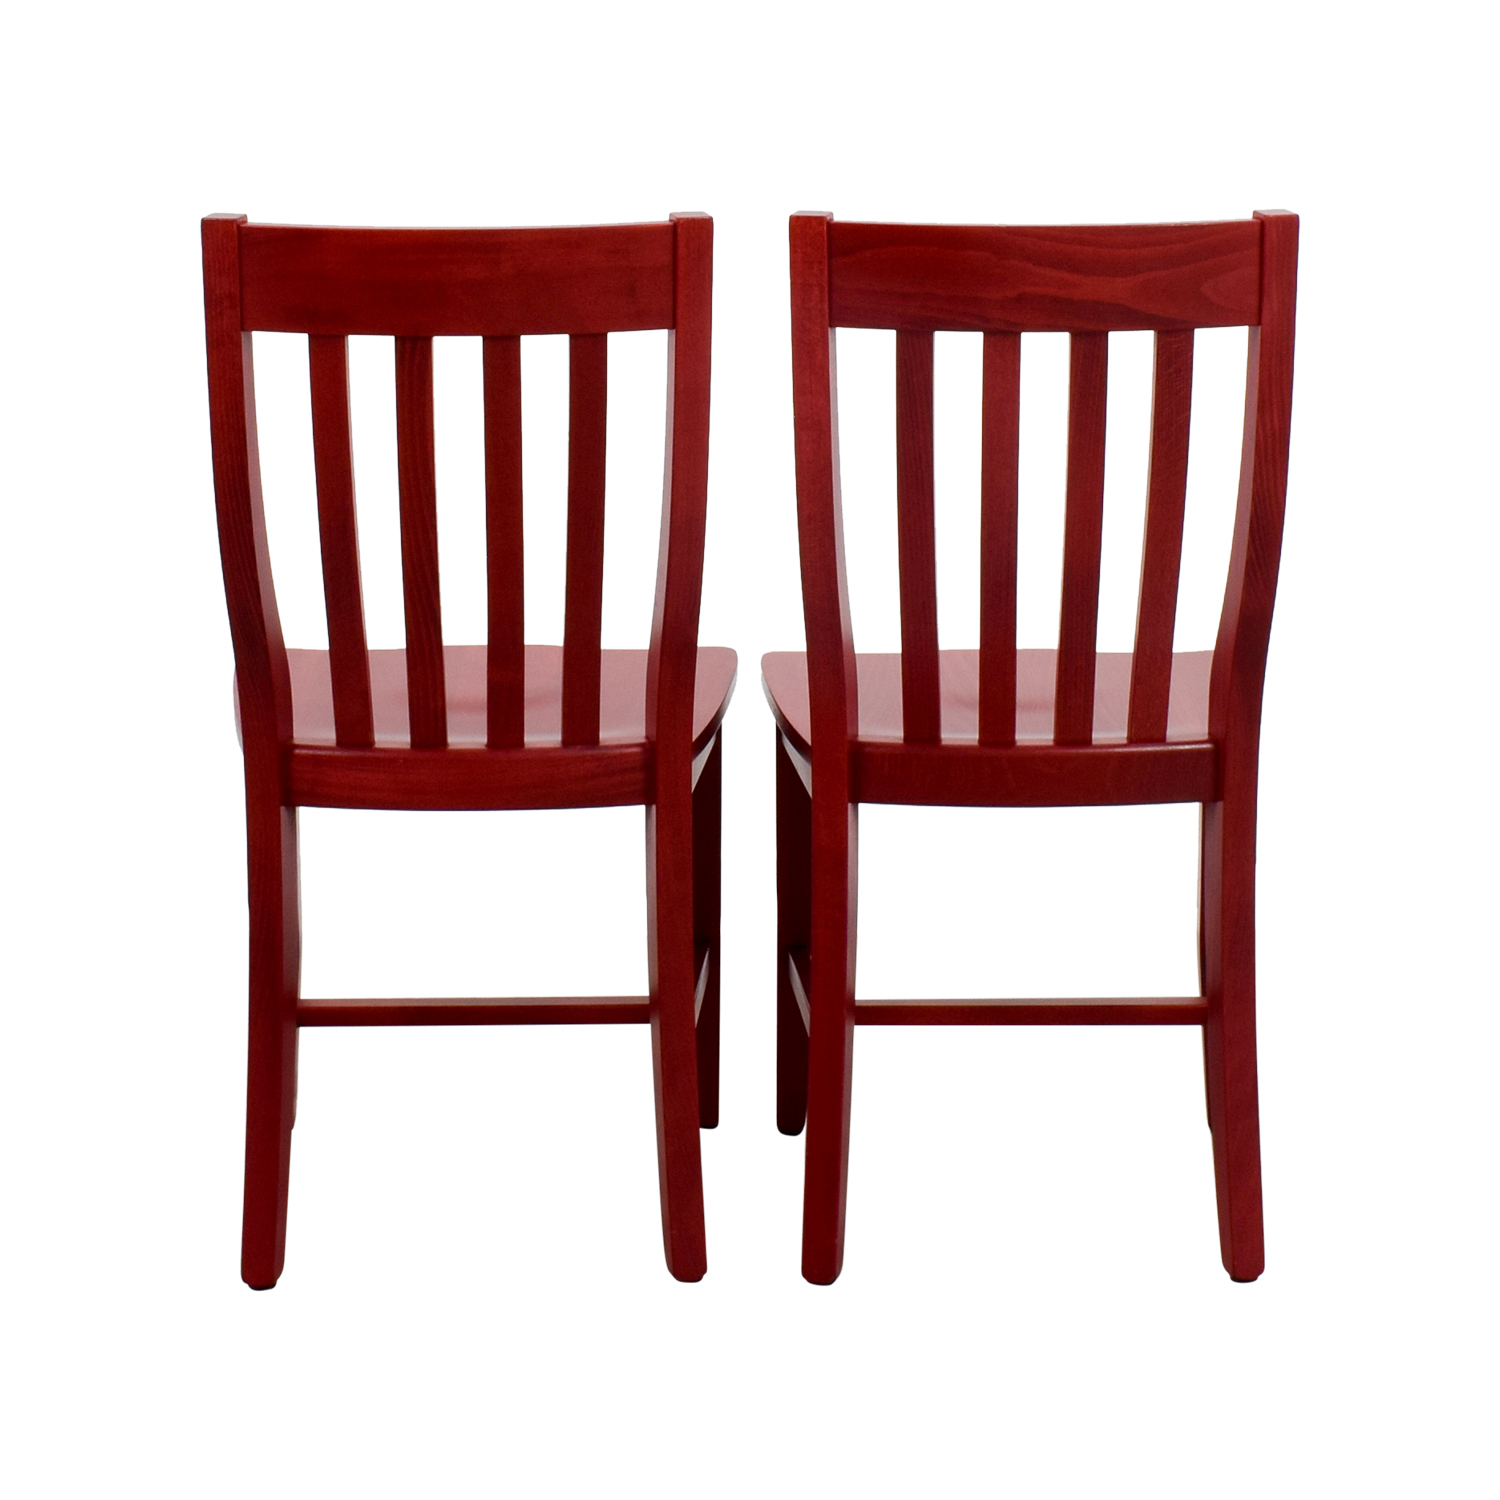 Pottery Barn Pottery Barn Schoolhouse Chairs discount